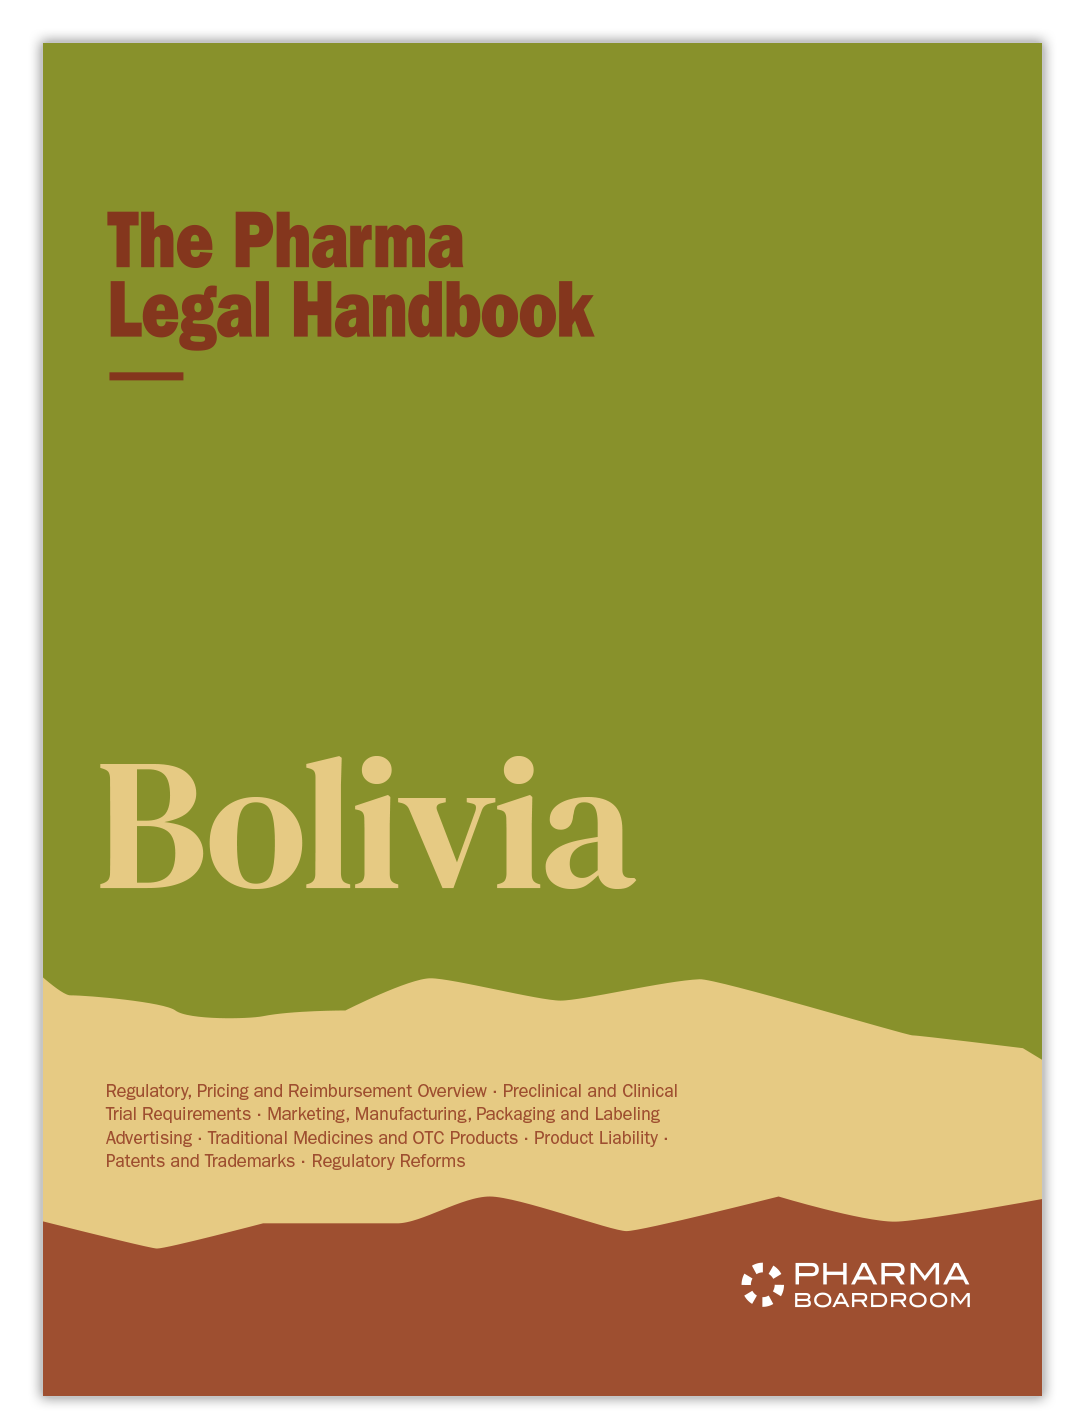 The Pharma Legal Handbook: Bolivia